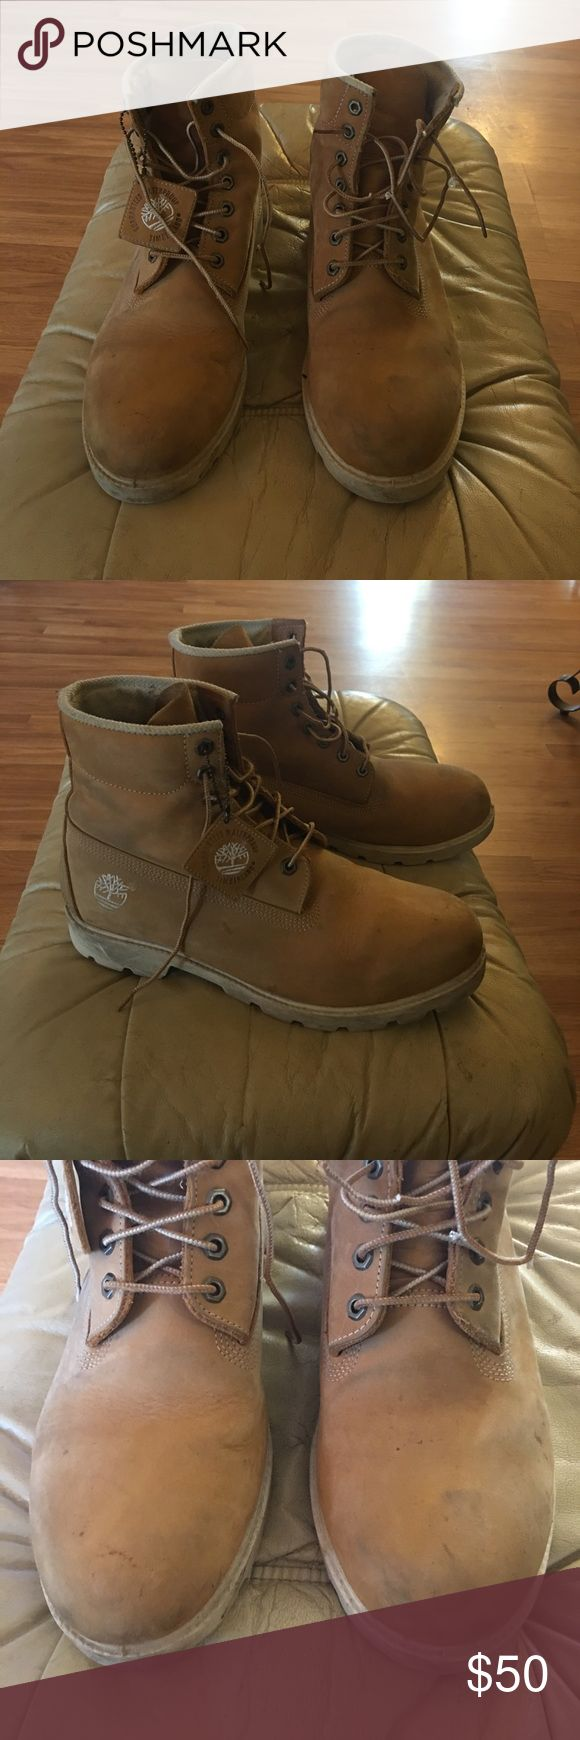 Men's Timberland boots Men's  wheat Timberland boots. Used but still good condition. Cream soles. Toes are a little dirty but I'm sure they will clean up easily. Just don't wanna try myself and mess them up😬 Timberland Shoes Boots